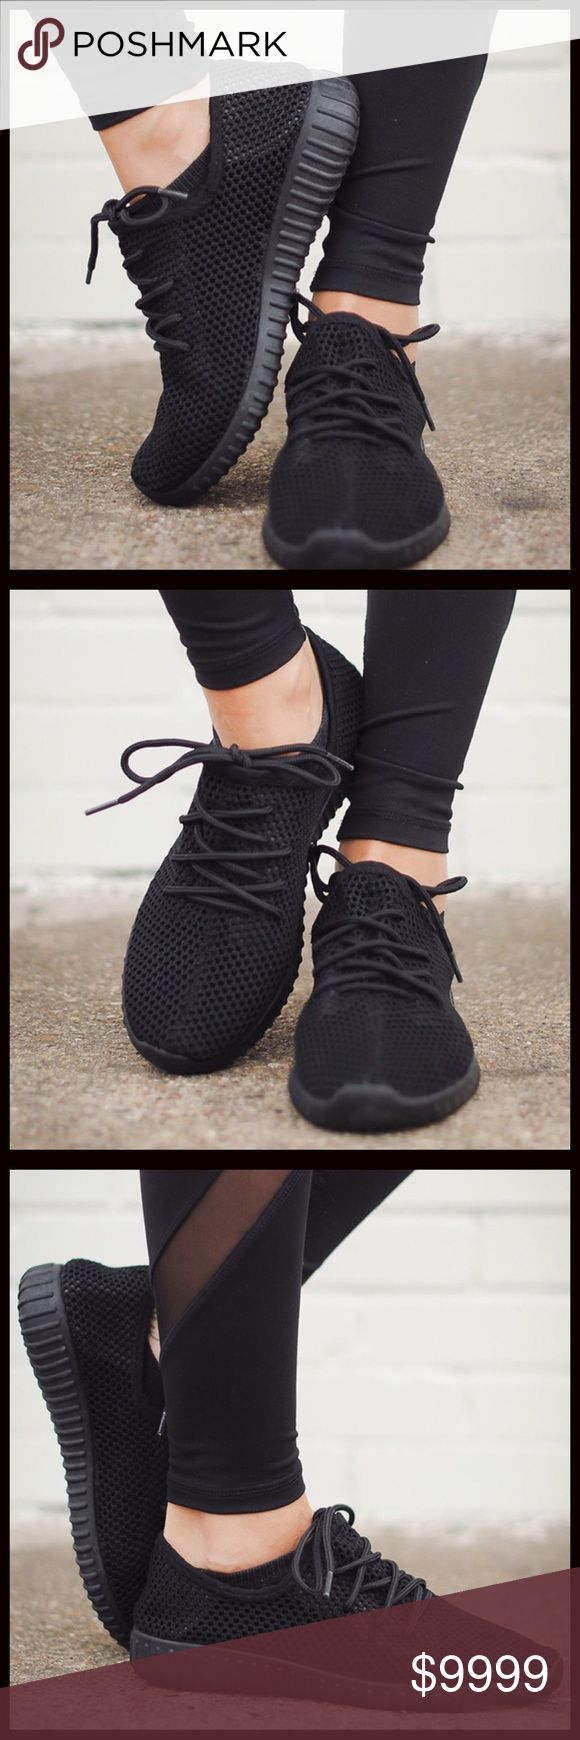 JUST IN‼️BESTSELLER NOW IN BLACK I can't get enough of this style of sneakers. They are perfect to throw on and go and so comfy. A customer Favorite in the grey and pink. Lightweight and so comfortable. Inside sole has a memory foam feel. Similar look to the celebrity Favorite yeezy brand. Runs true to size. 5⭐️ shoes. Bundle and save 10%. No trades. Shoes Sneakers